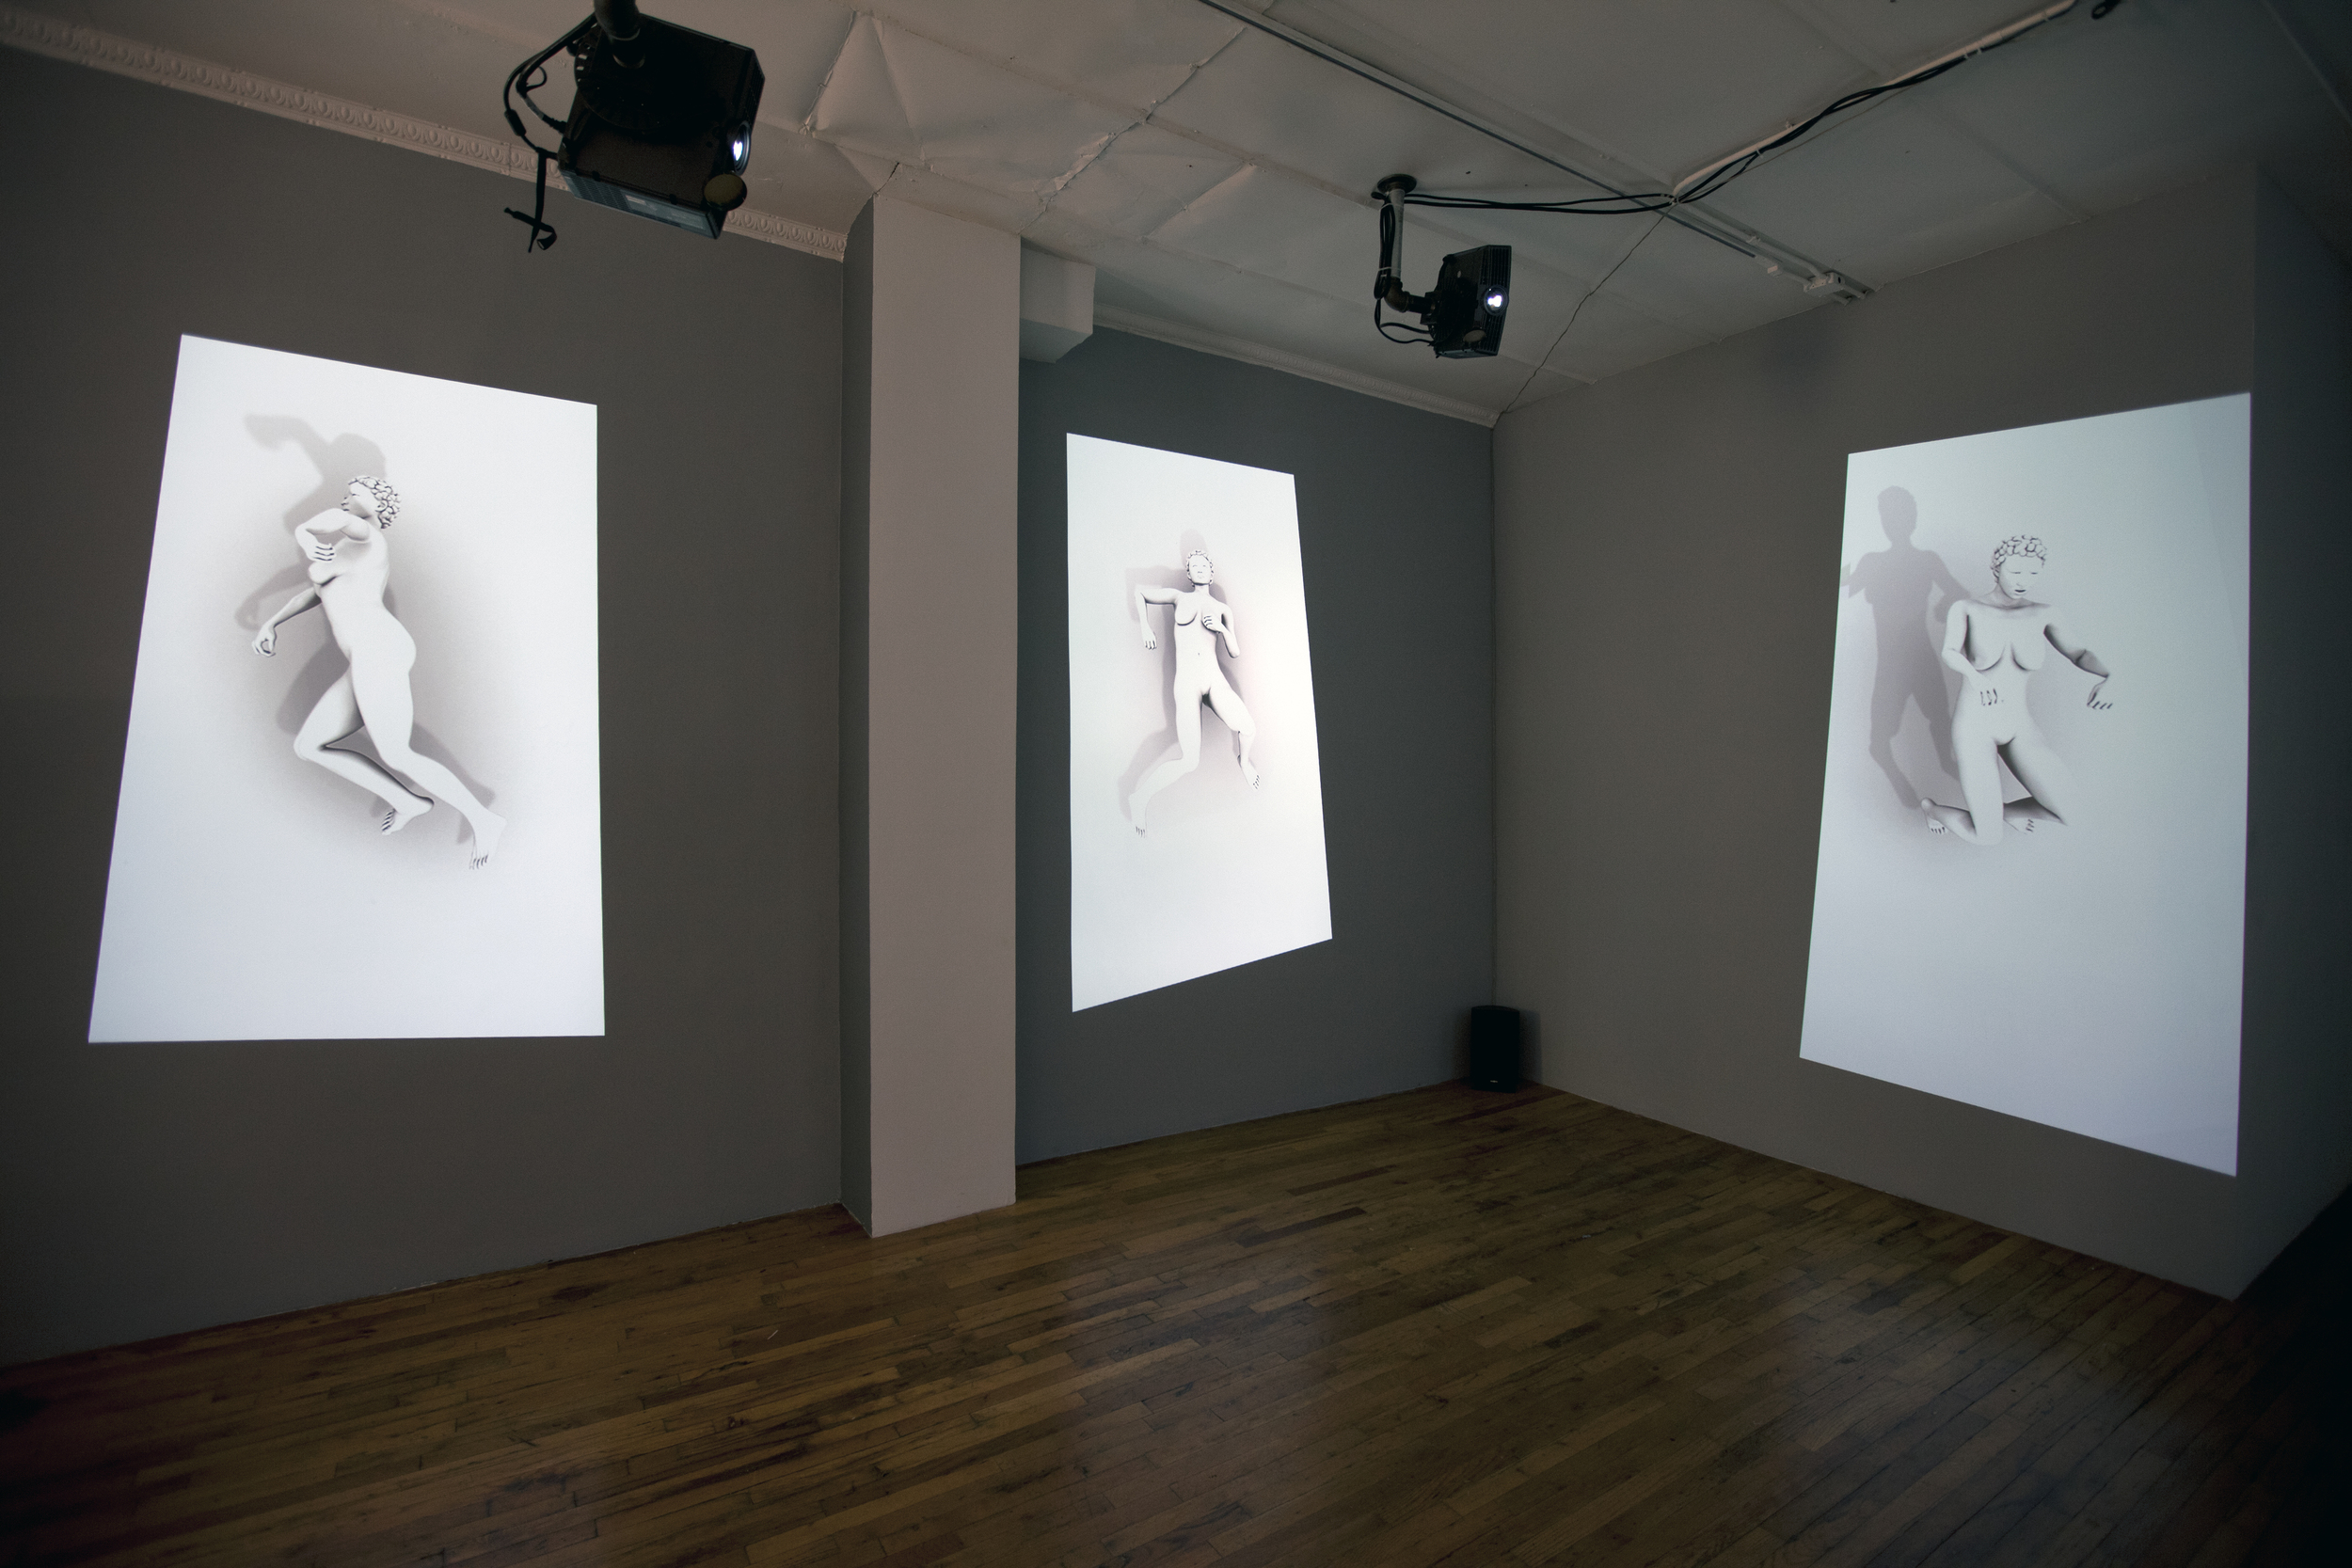 Image: Claudia Hart, Recumulations, installation view /   © Claudia Hart  © Black & White Gallery/Project Space